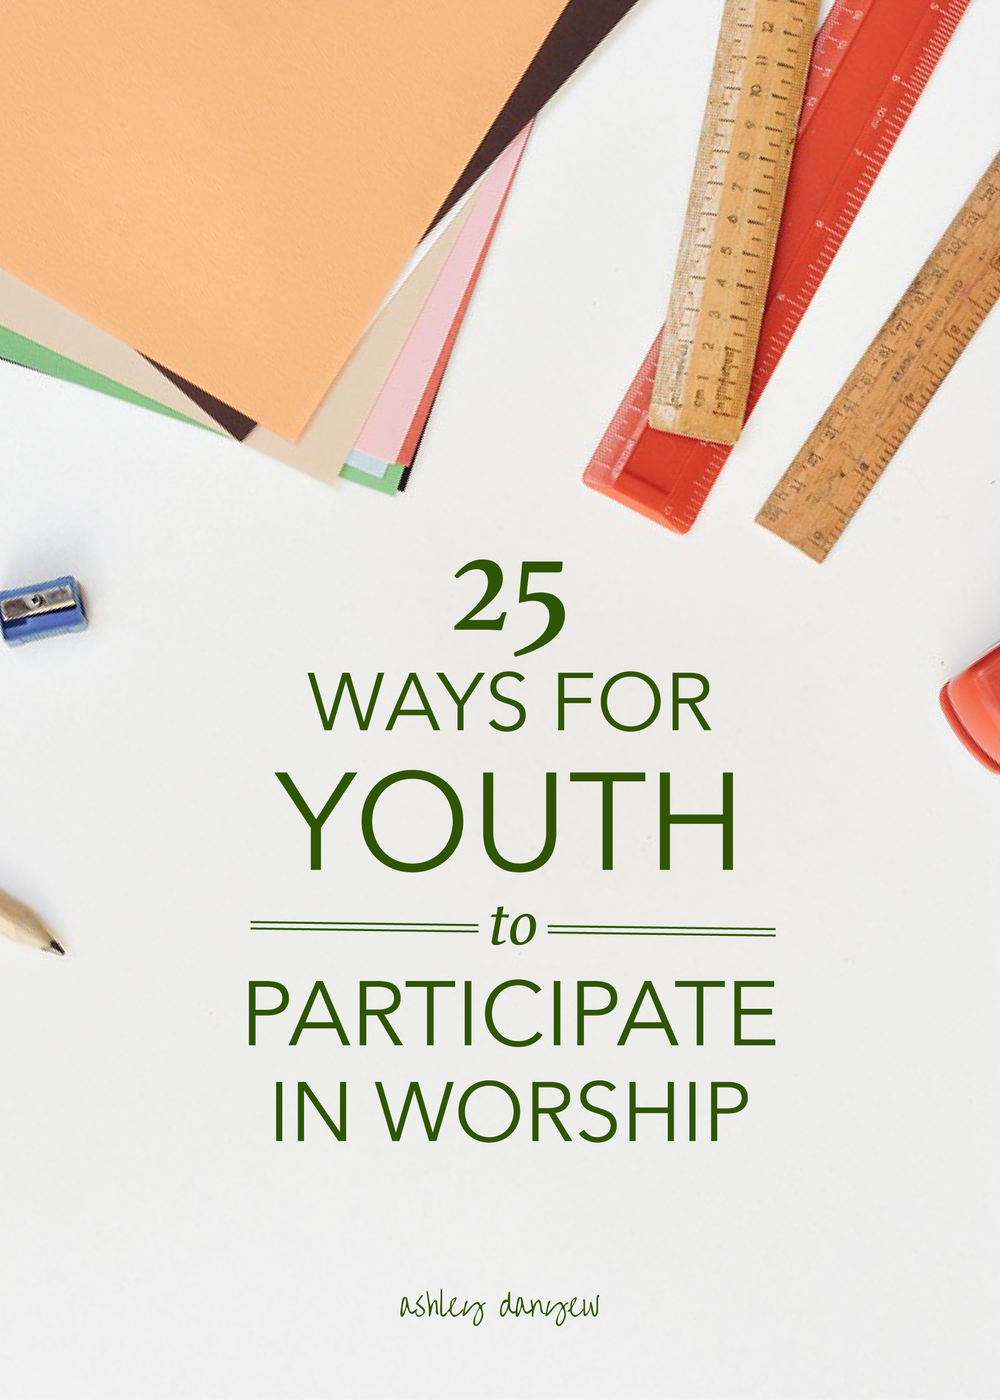 25-Ways-for-Youth-to-Participate-in-Worship-01.png